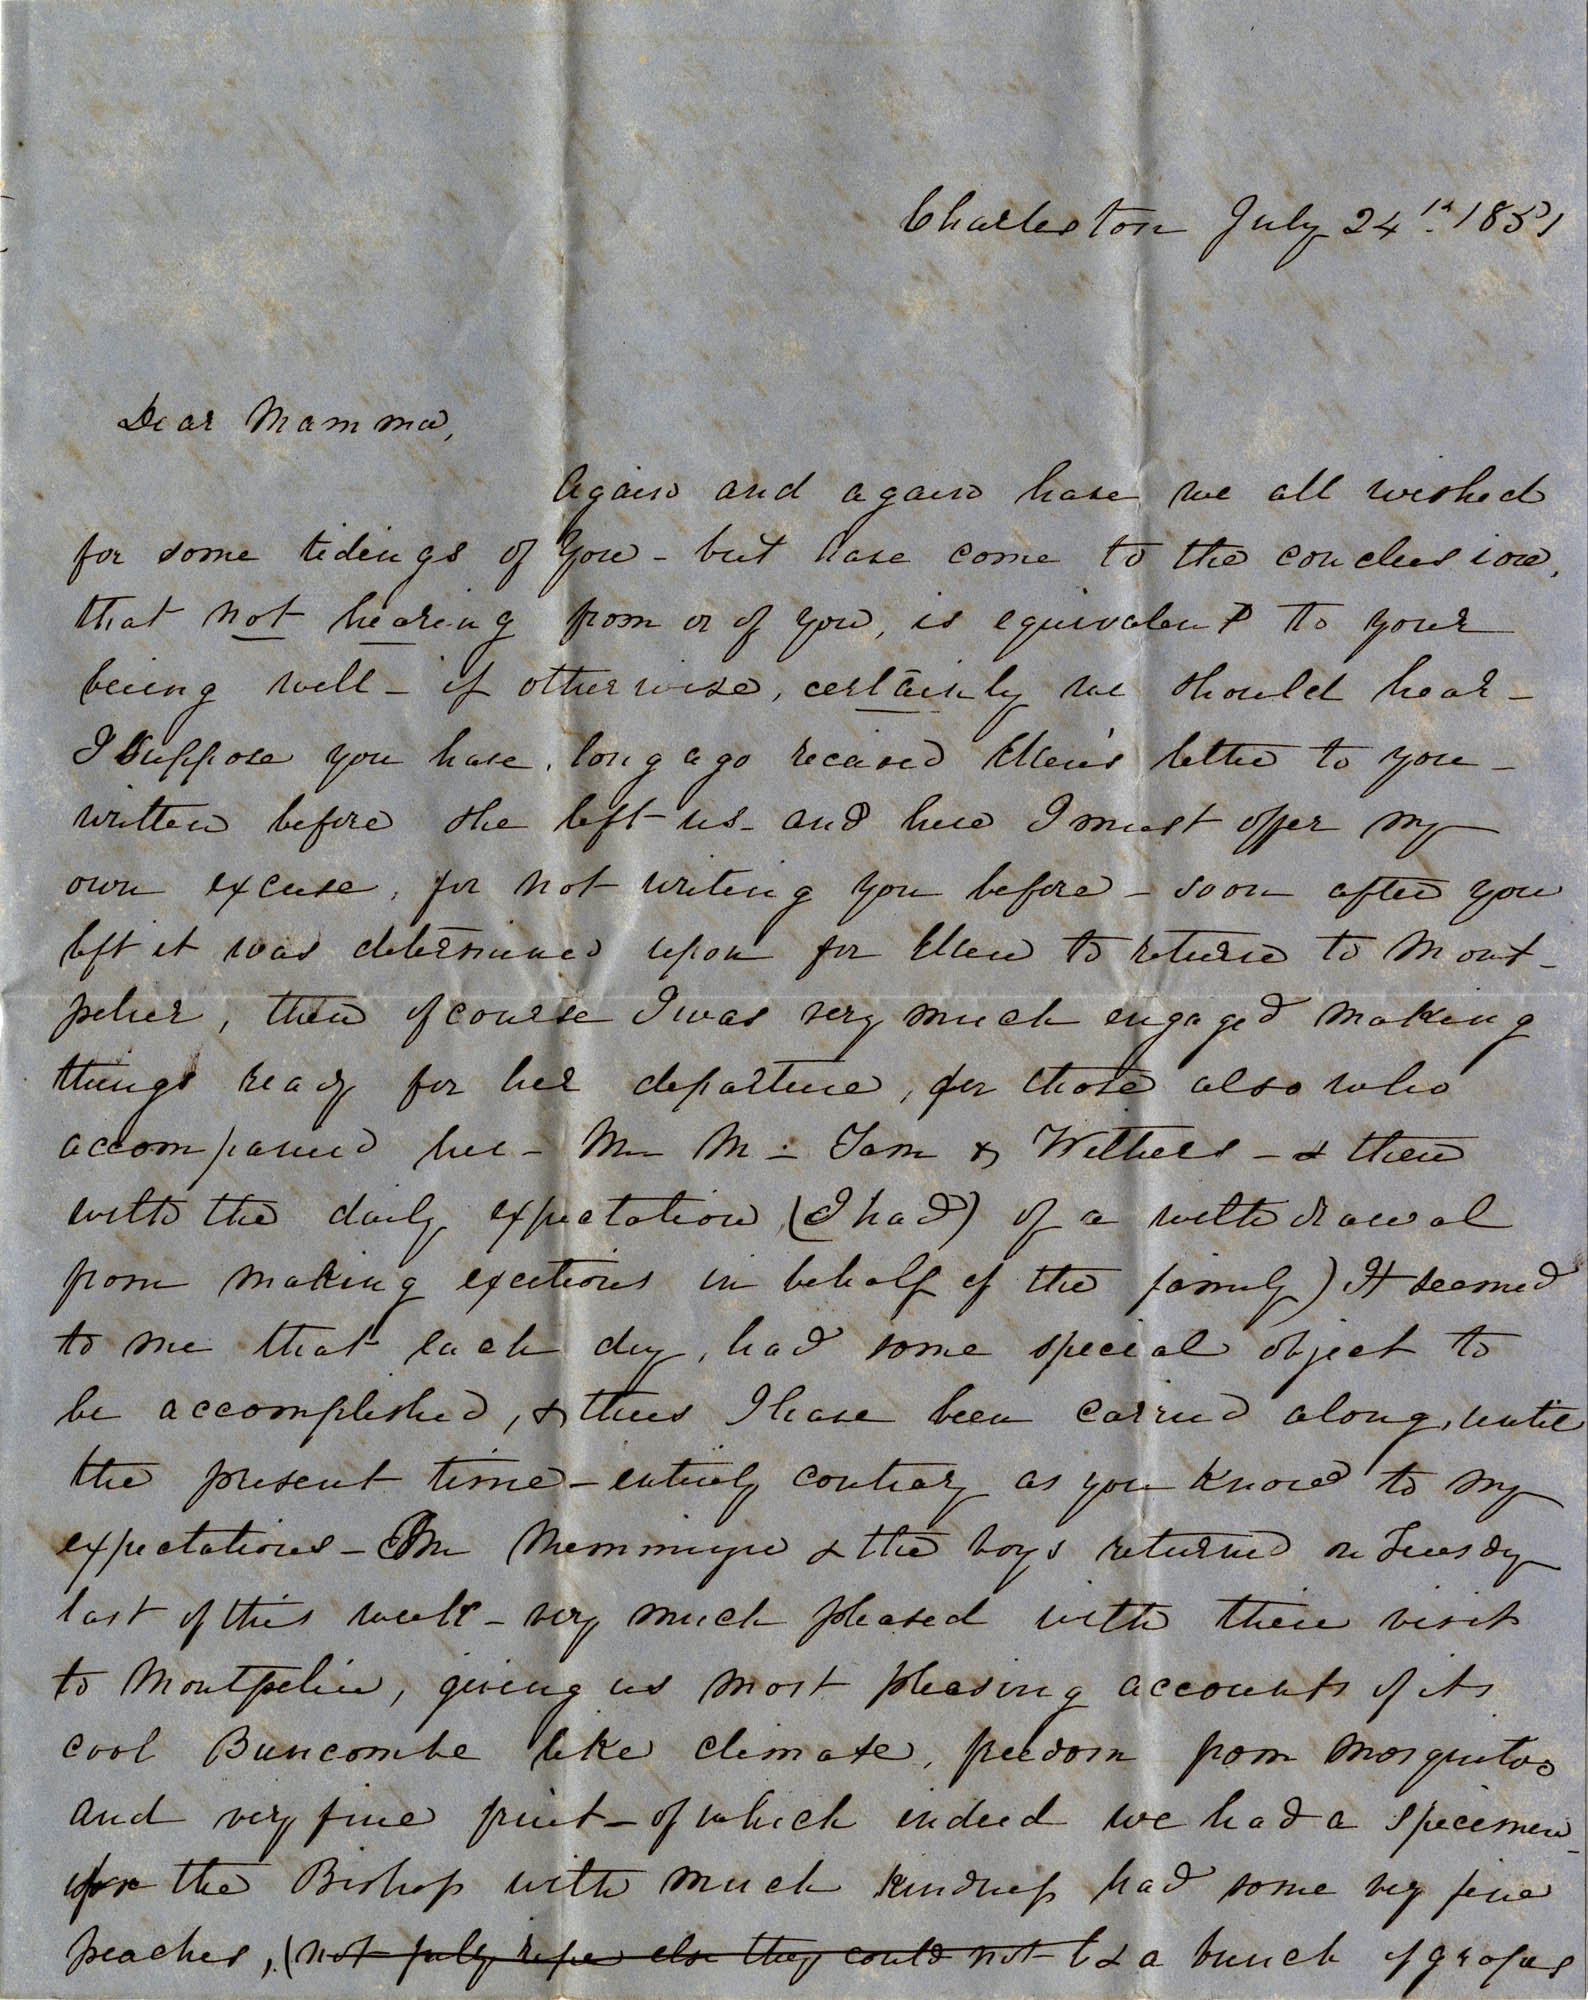 034. Mary Wilkinson Memminger to Eleanora Wilkinson -- July 24, 1851